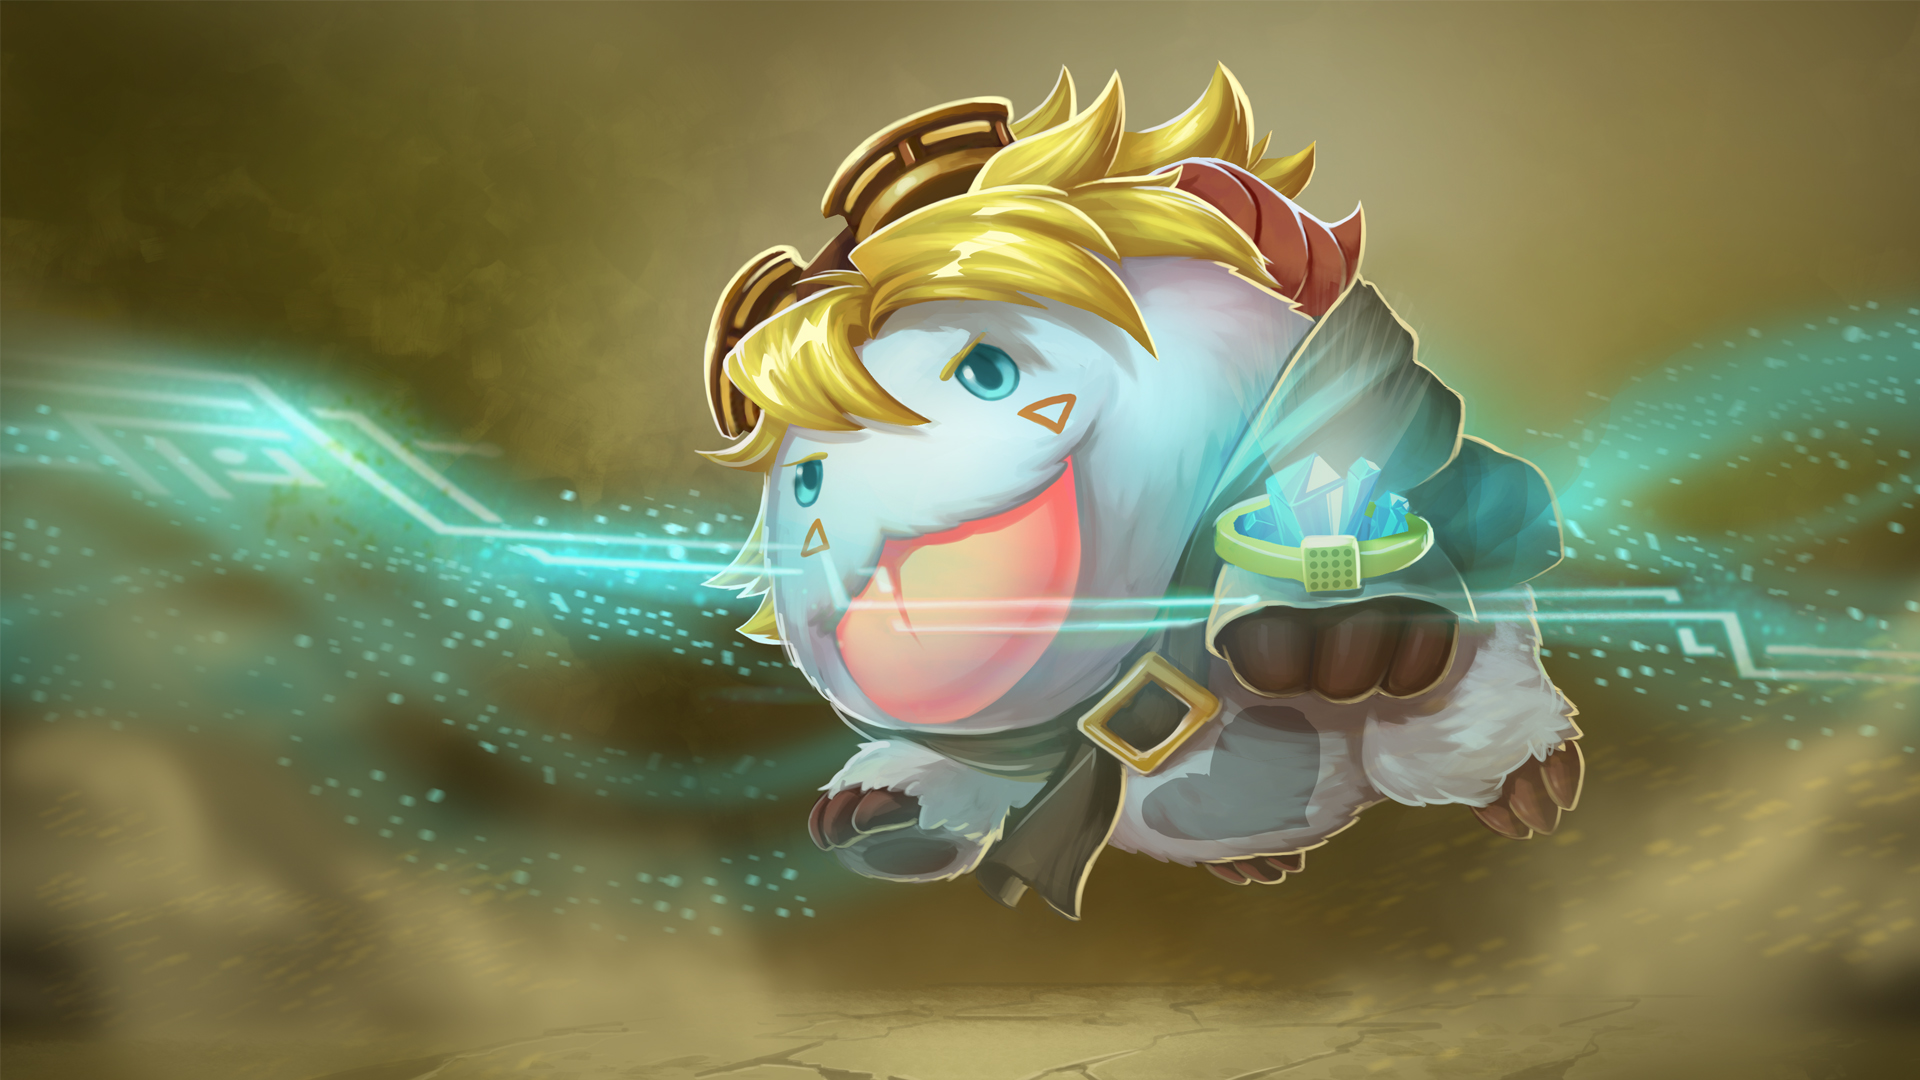 Ezreal Poro Wallpapers Hd League Of Legends Wallpapers Art Of Lol